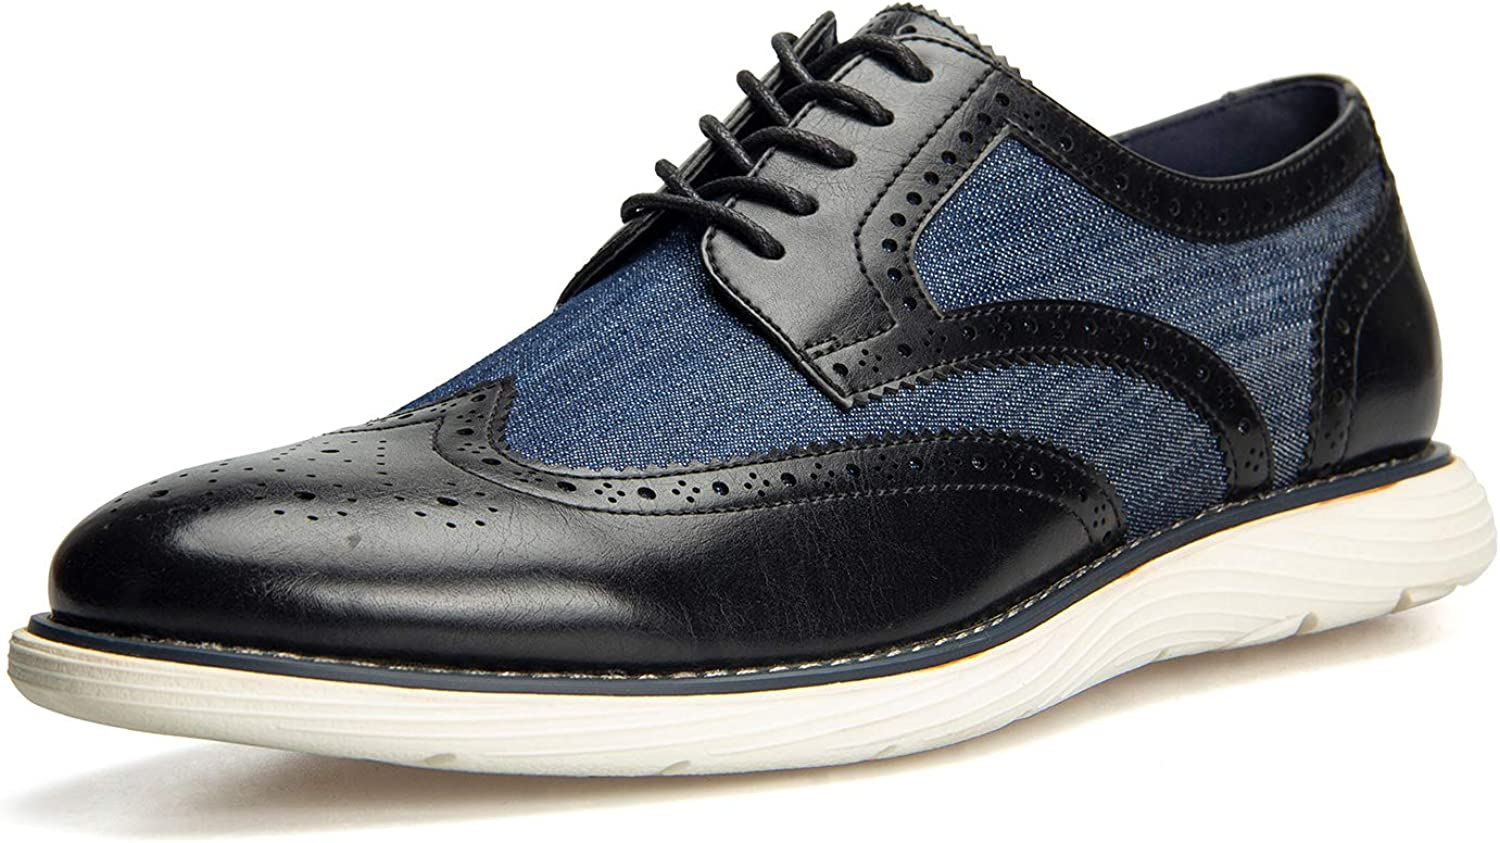 Meijiana Men's Oxford Shoes Casual Shoes for Men Casual Dress Shoes for Men